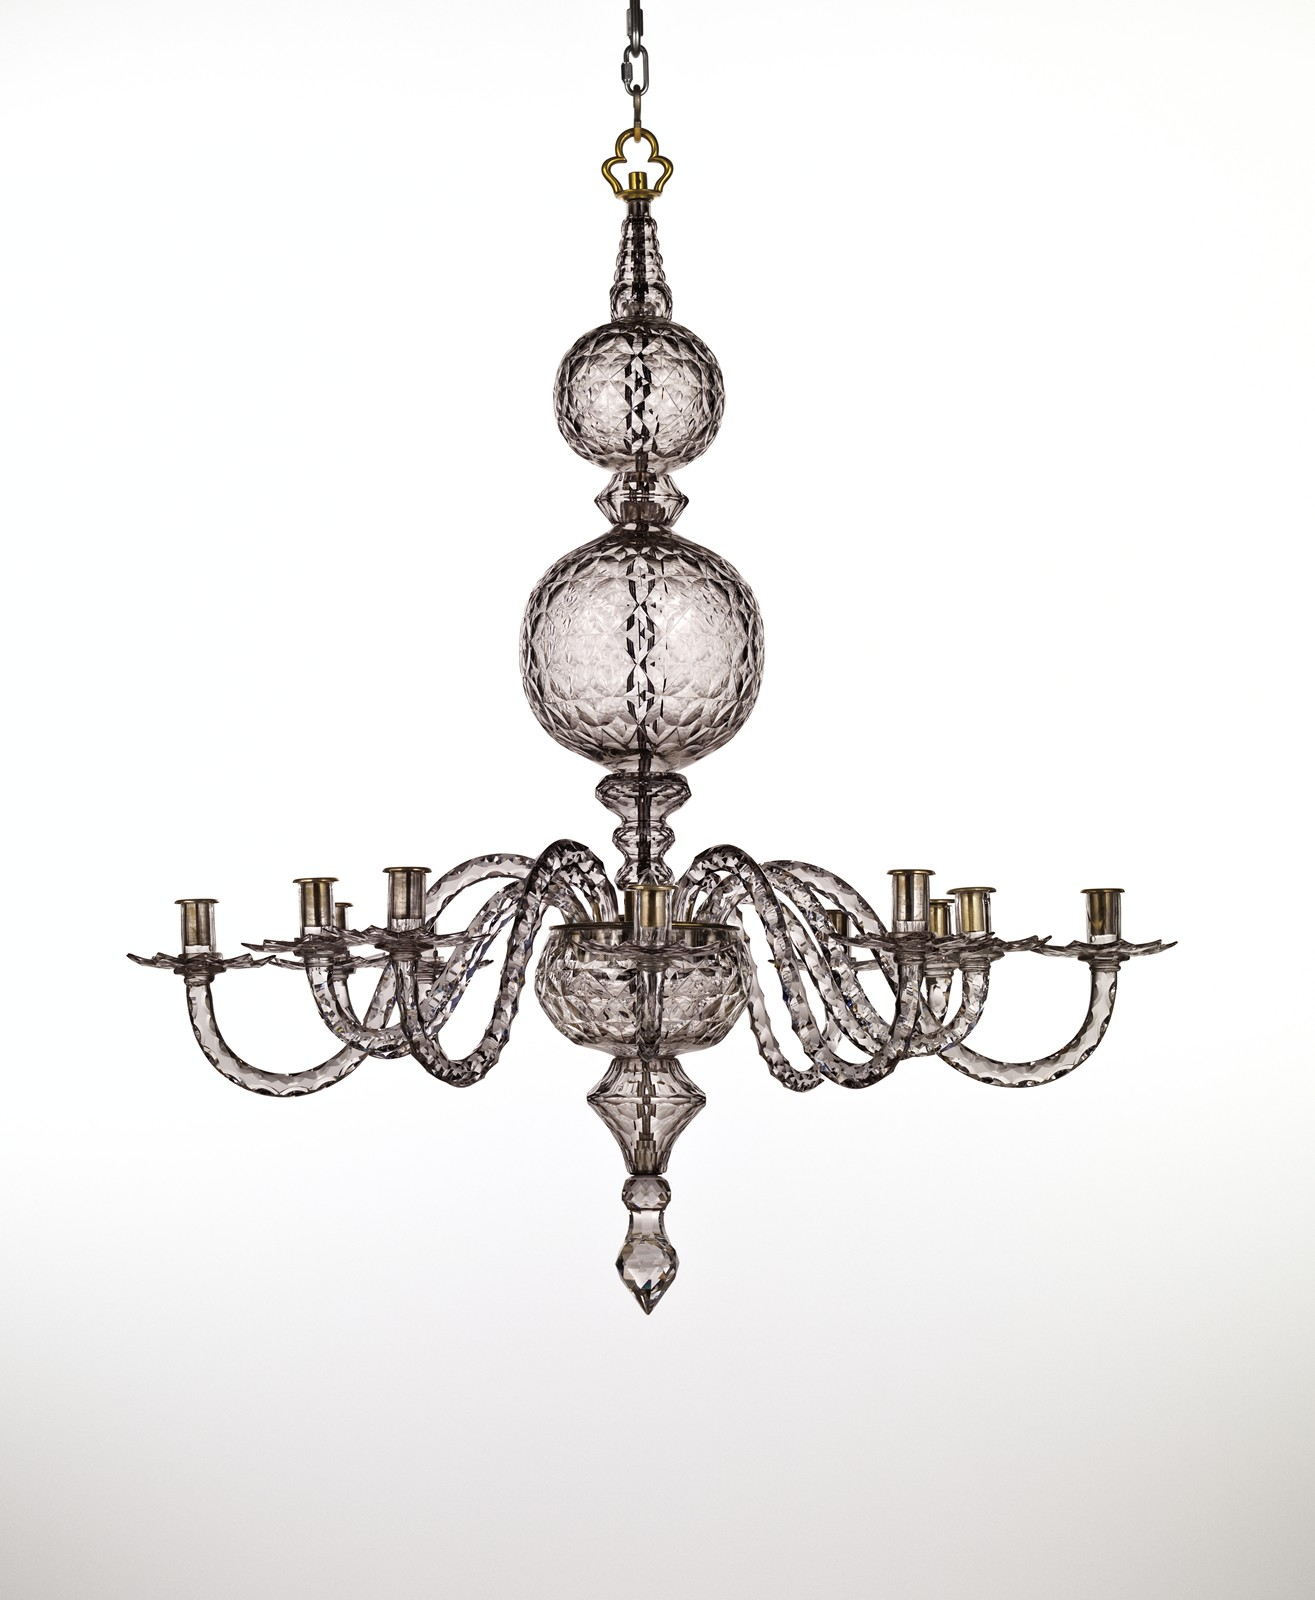 Chandelier with Twelve Arms